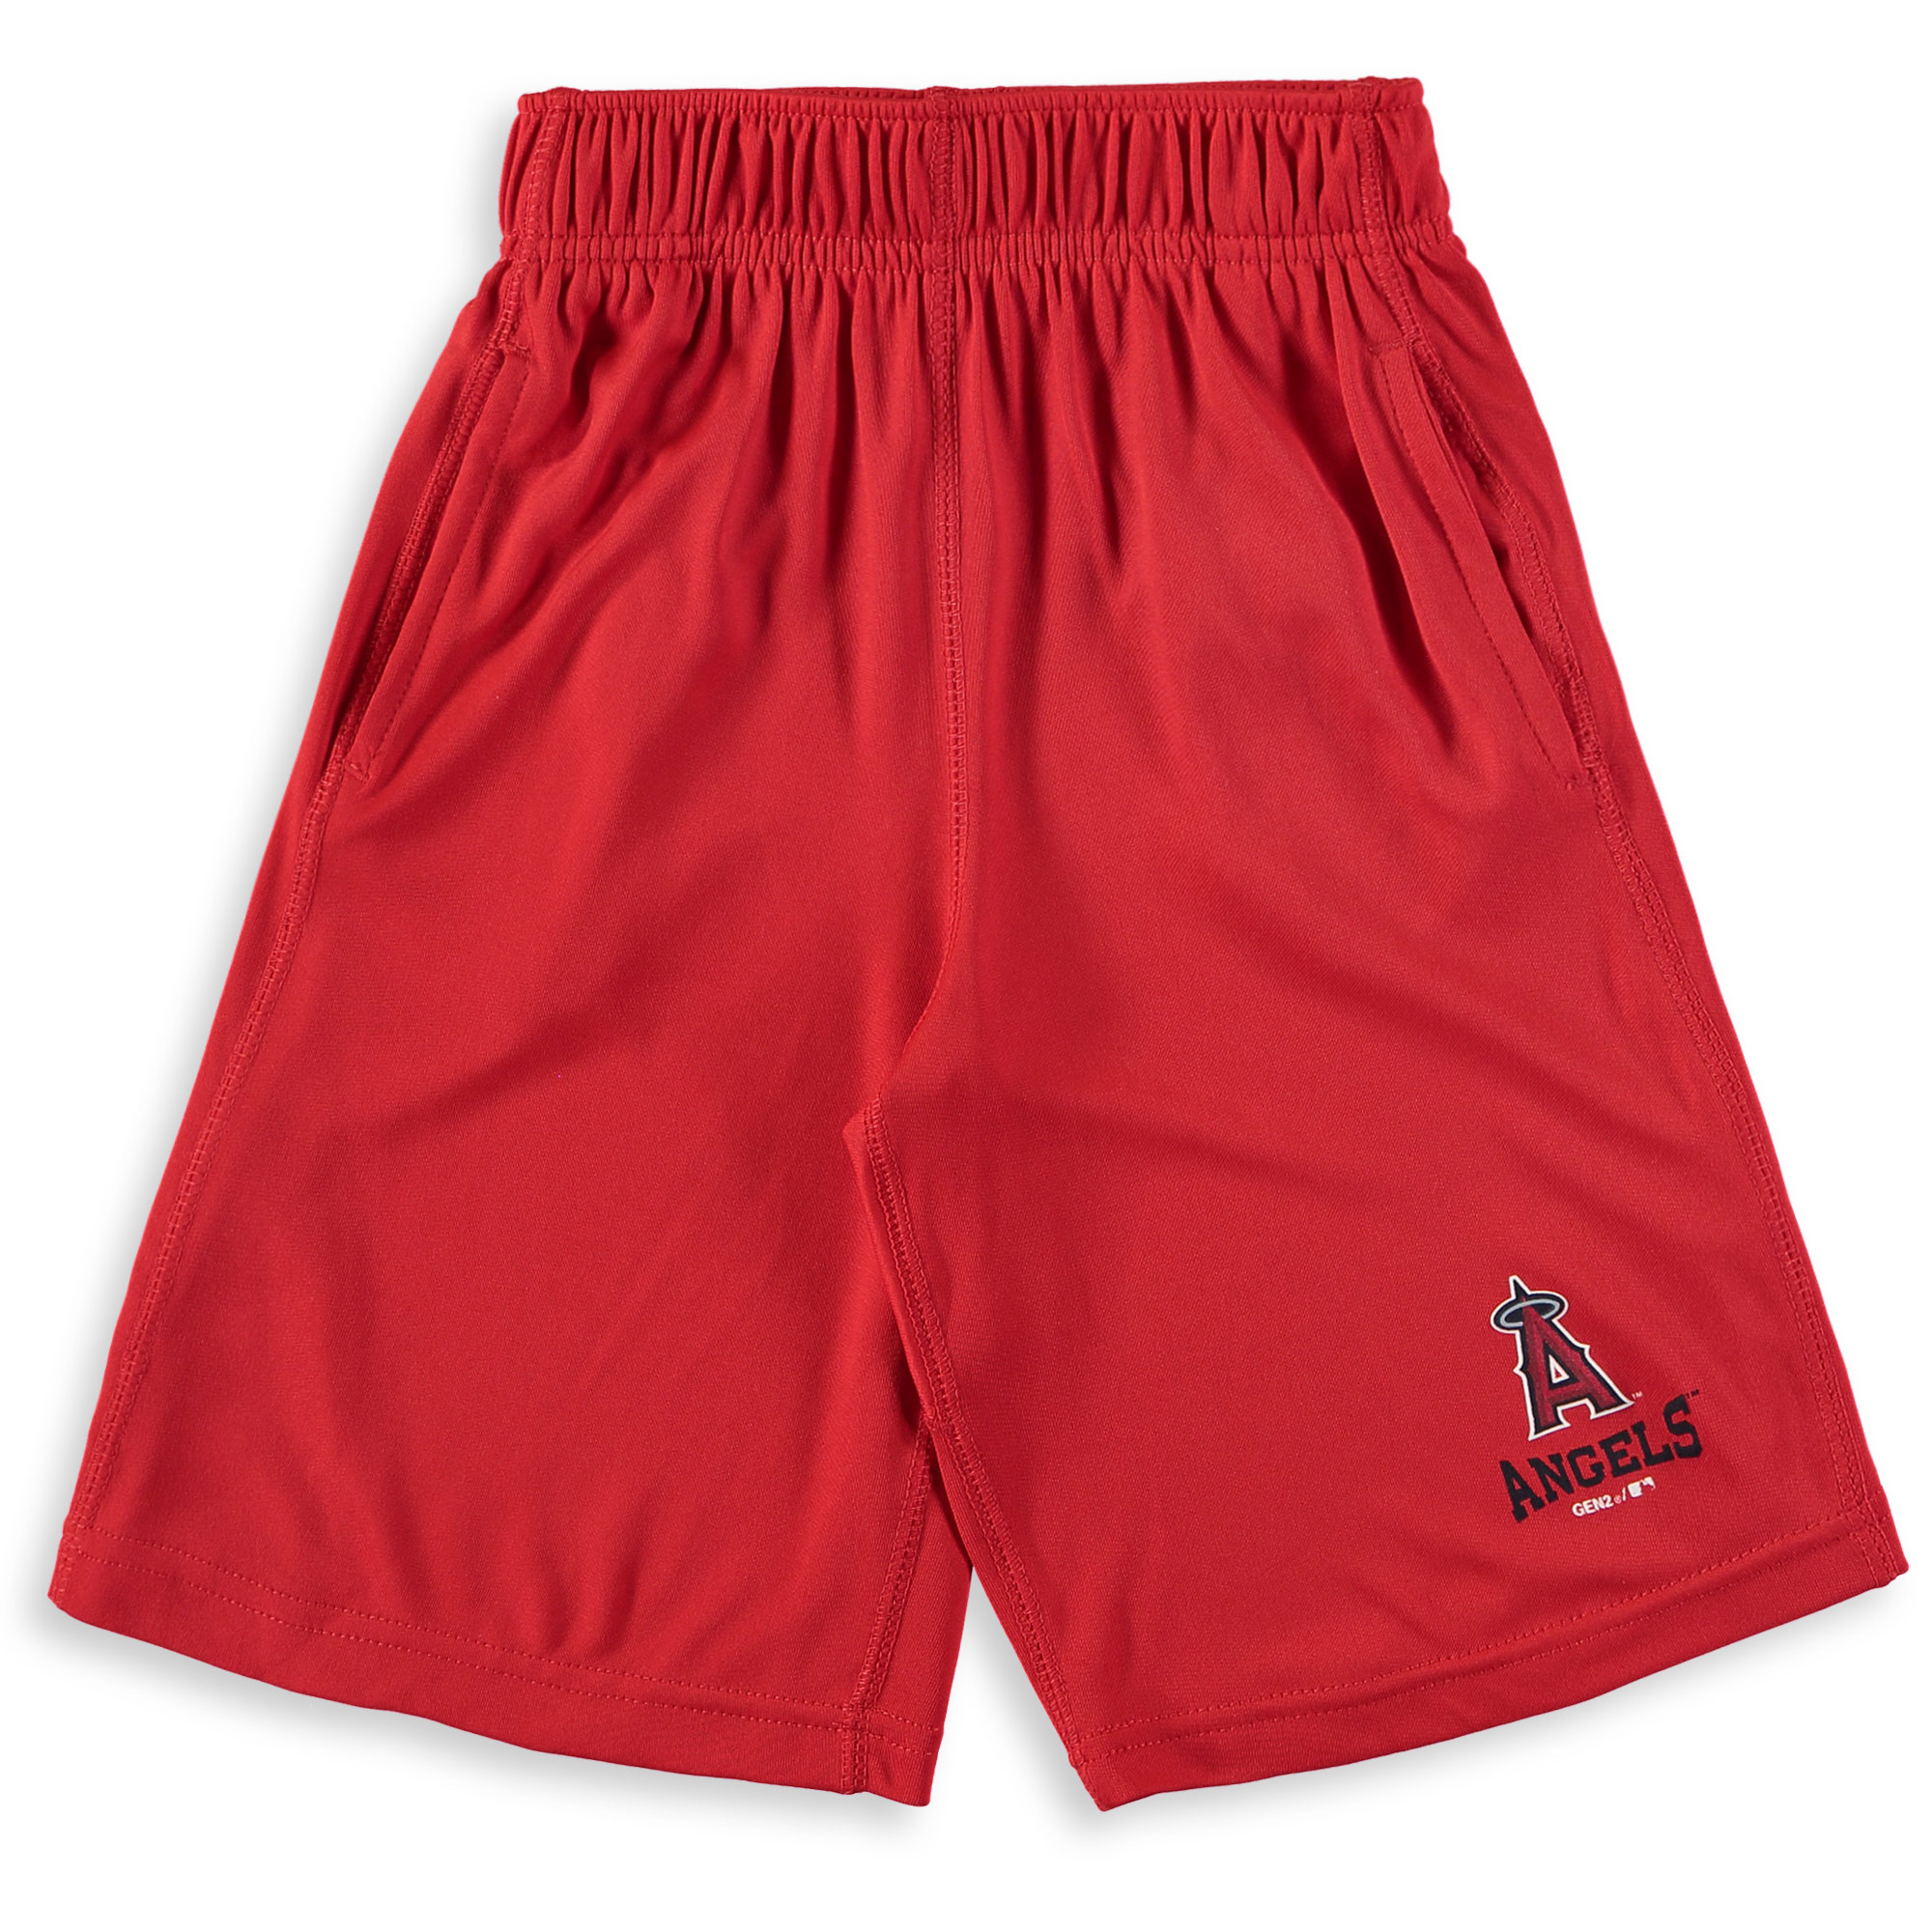 Los Angeles Angels Youth Link Up Performance Shorts - Red